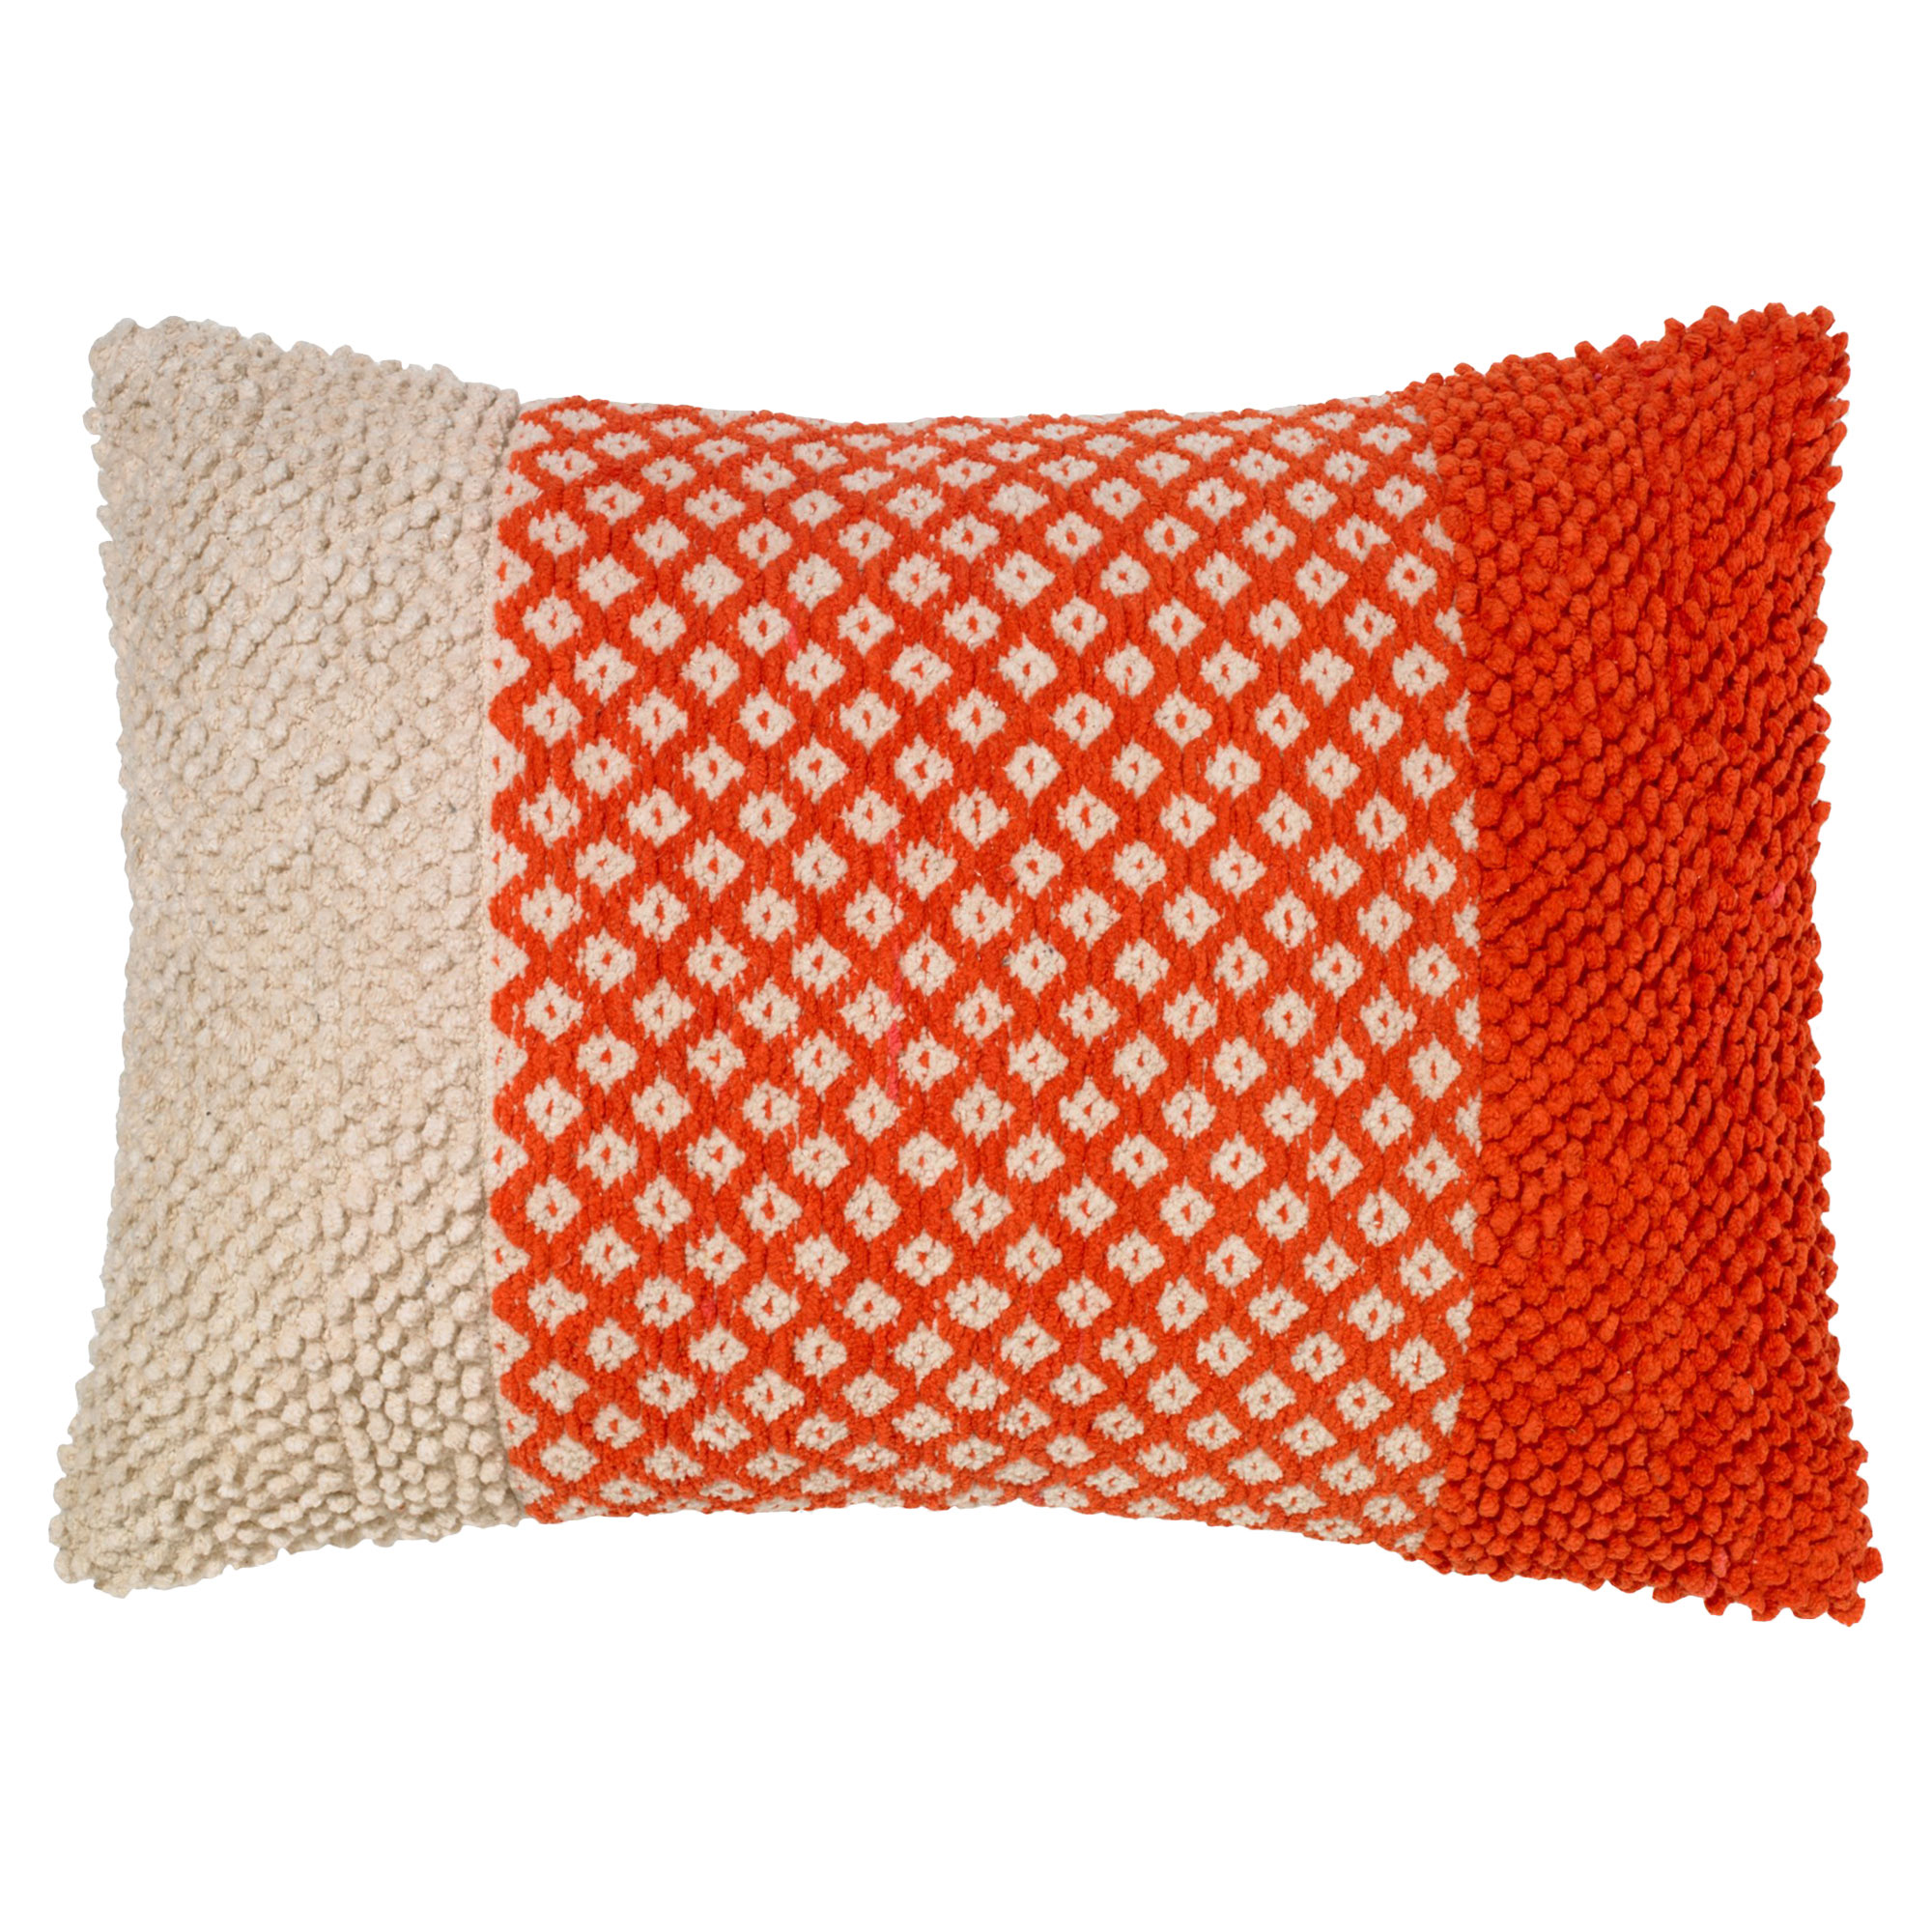 Frida Bazaar Red Textured Beige Pillow - 15.75x23.5